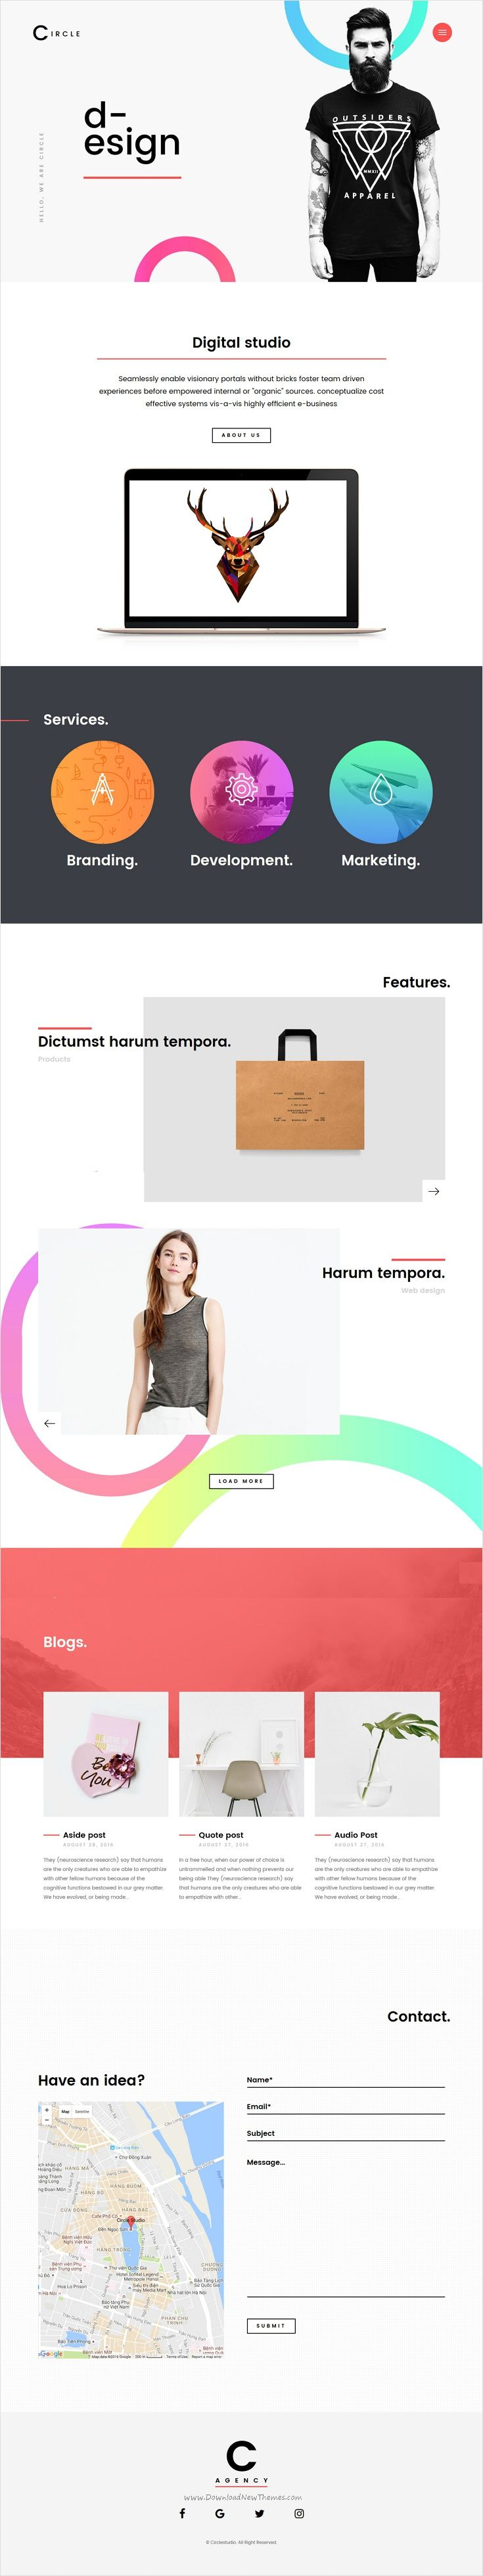 Circle is an ideal #WordPress #theme for #agencies that really want to differentiate themselves from their competitors to make a deeply impression on their potential clients and partners download now➩ https://themeforest.net/item/circle-creative-business-portfolio-blog-wordpress-theme/17910680?ref=Datasata